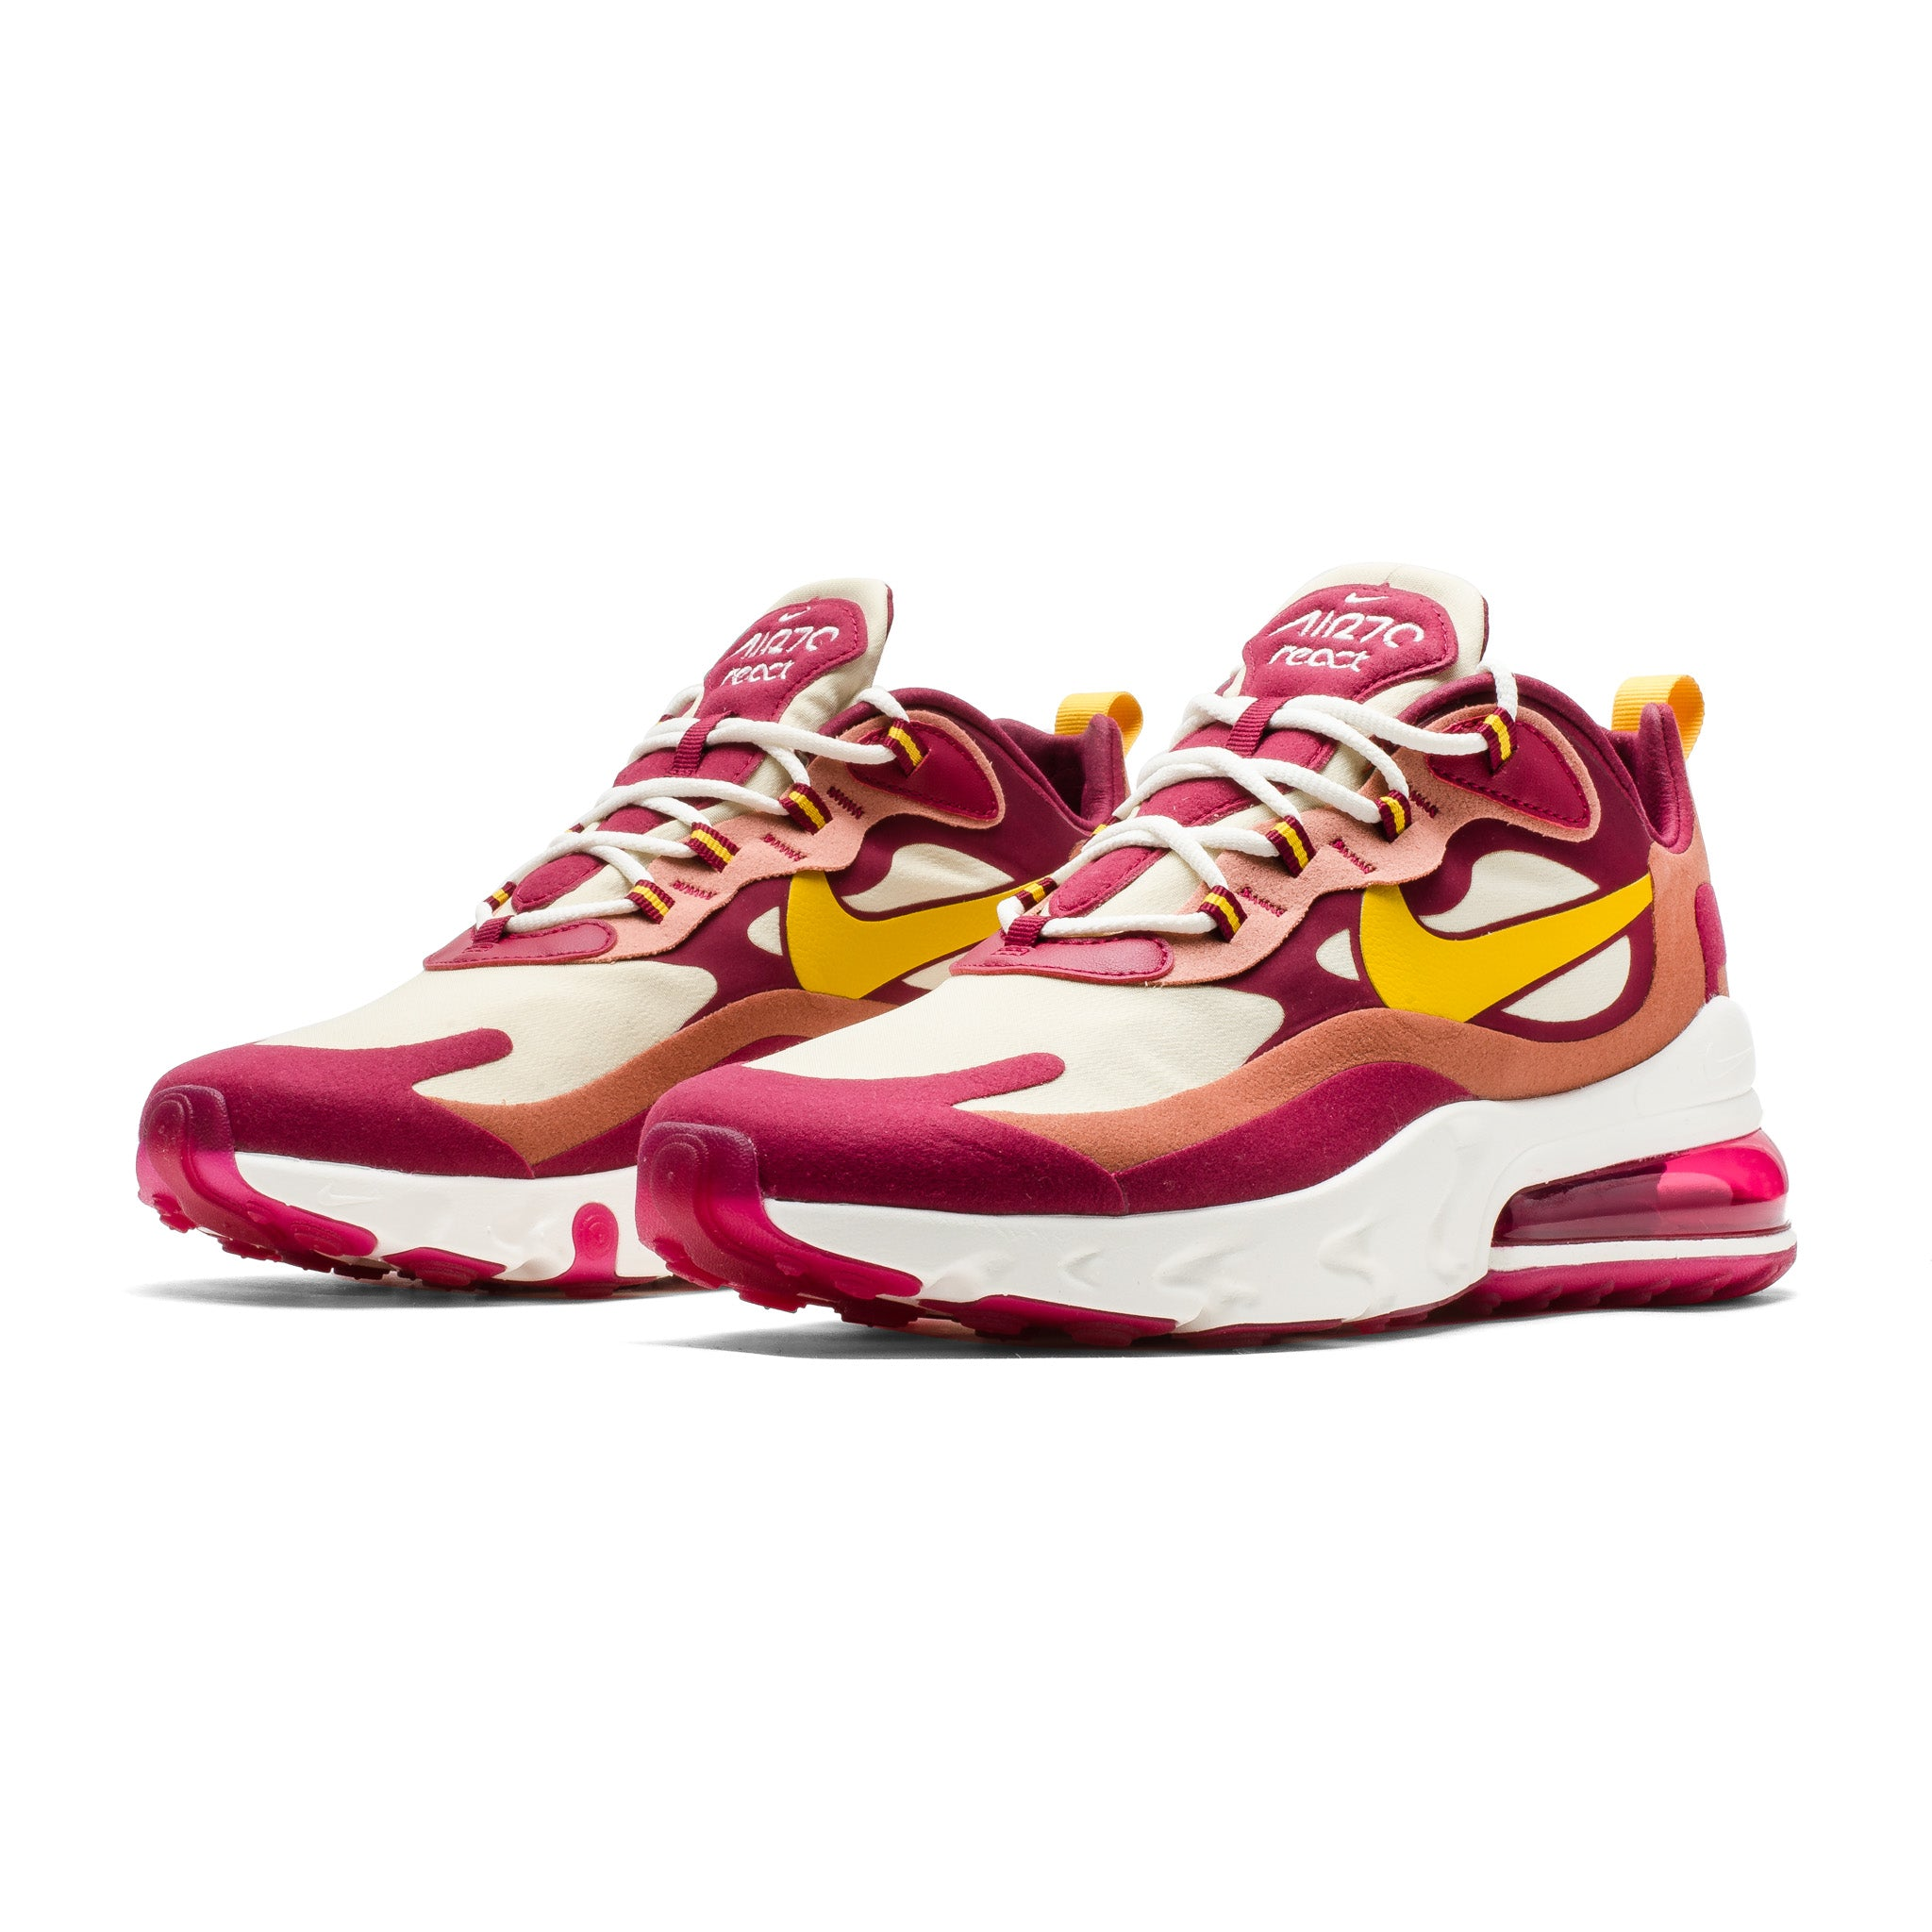 Air Max 270 React AO4971-601 Red